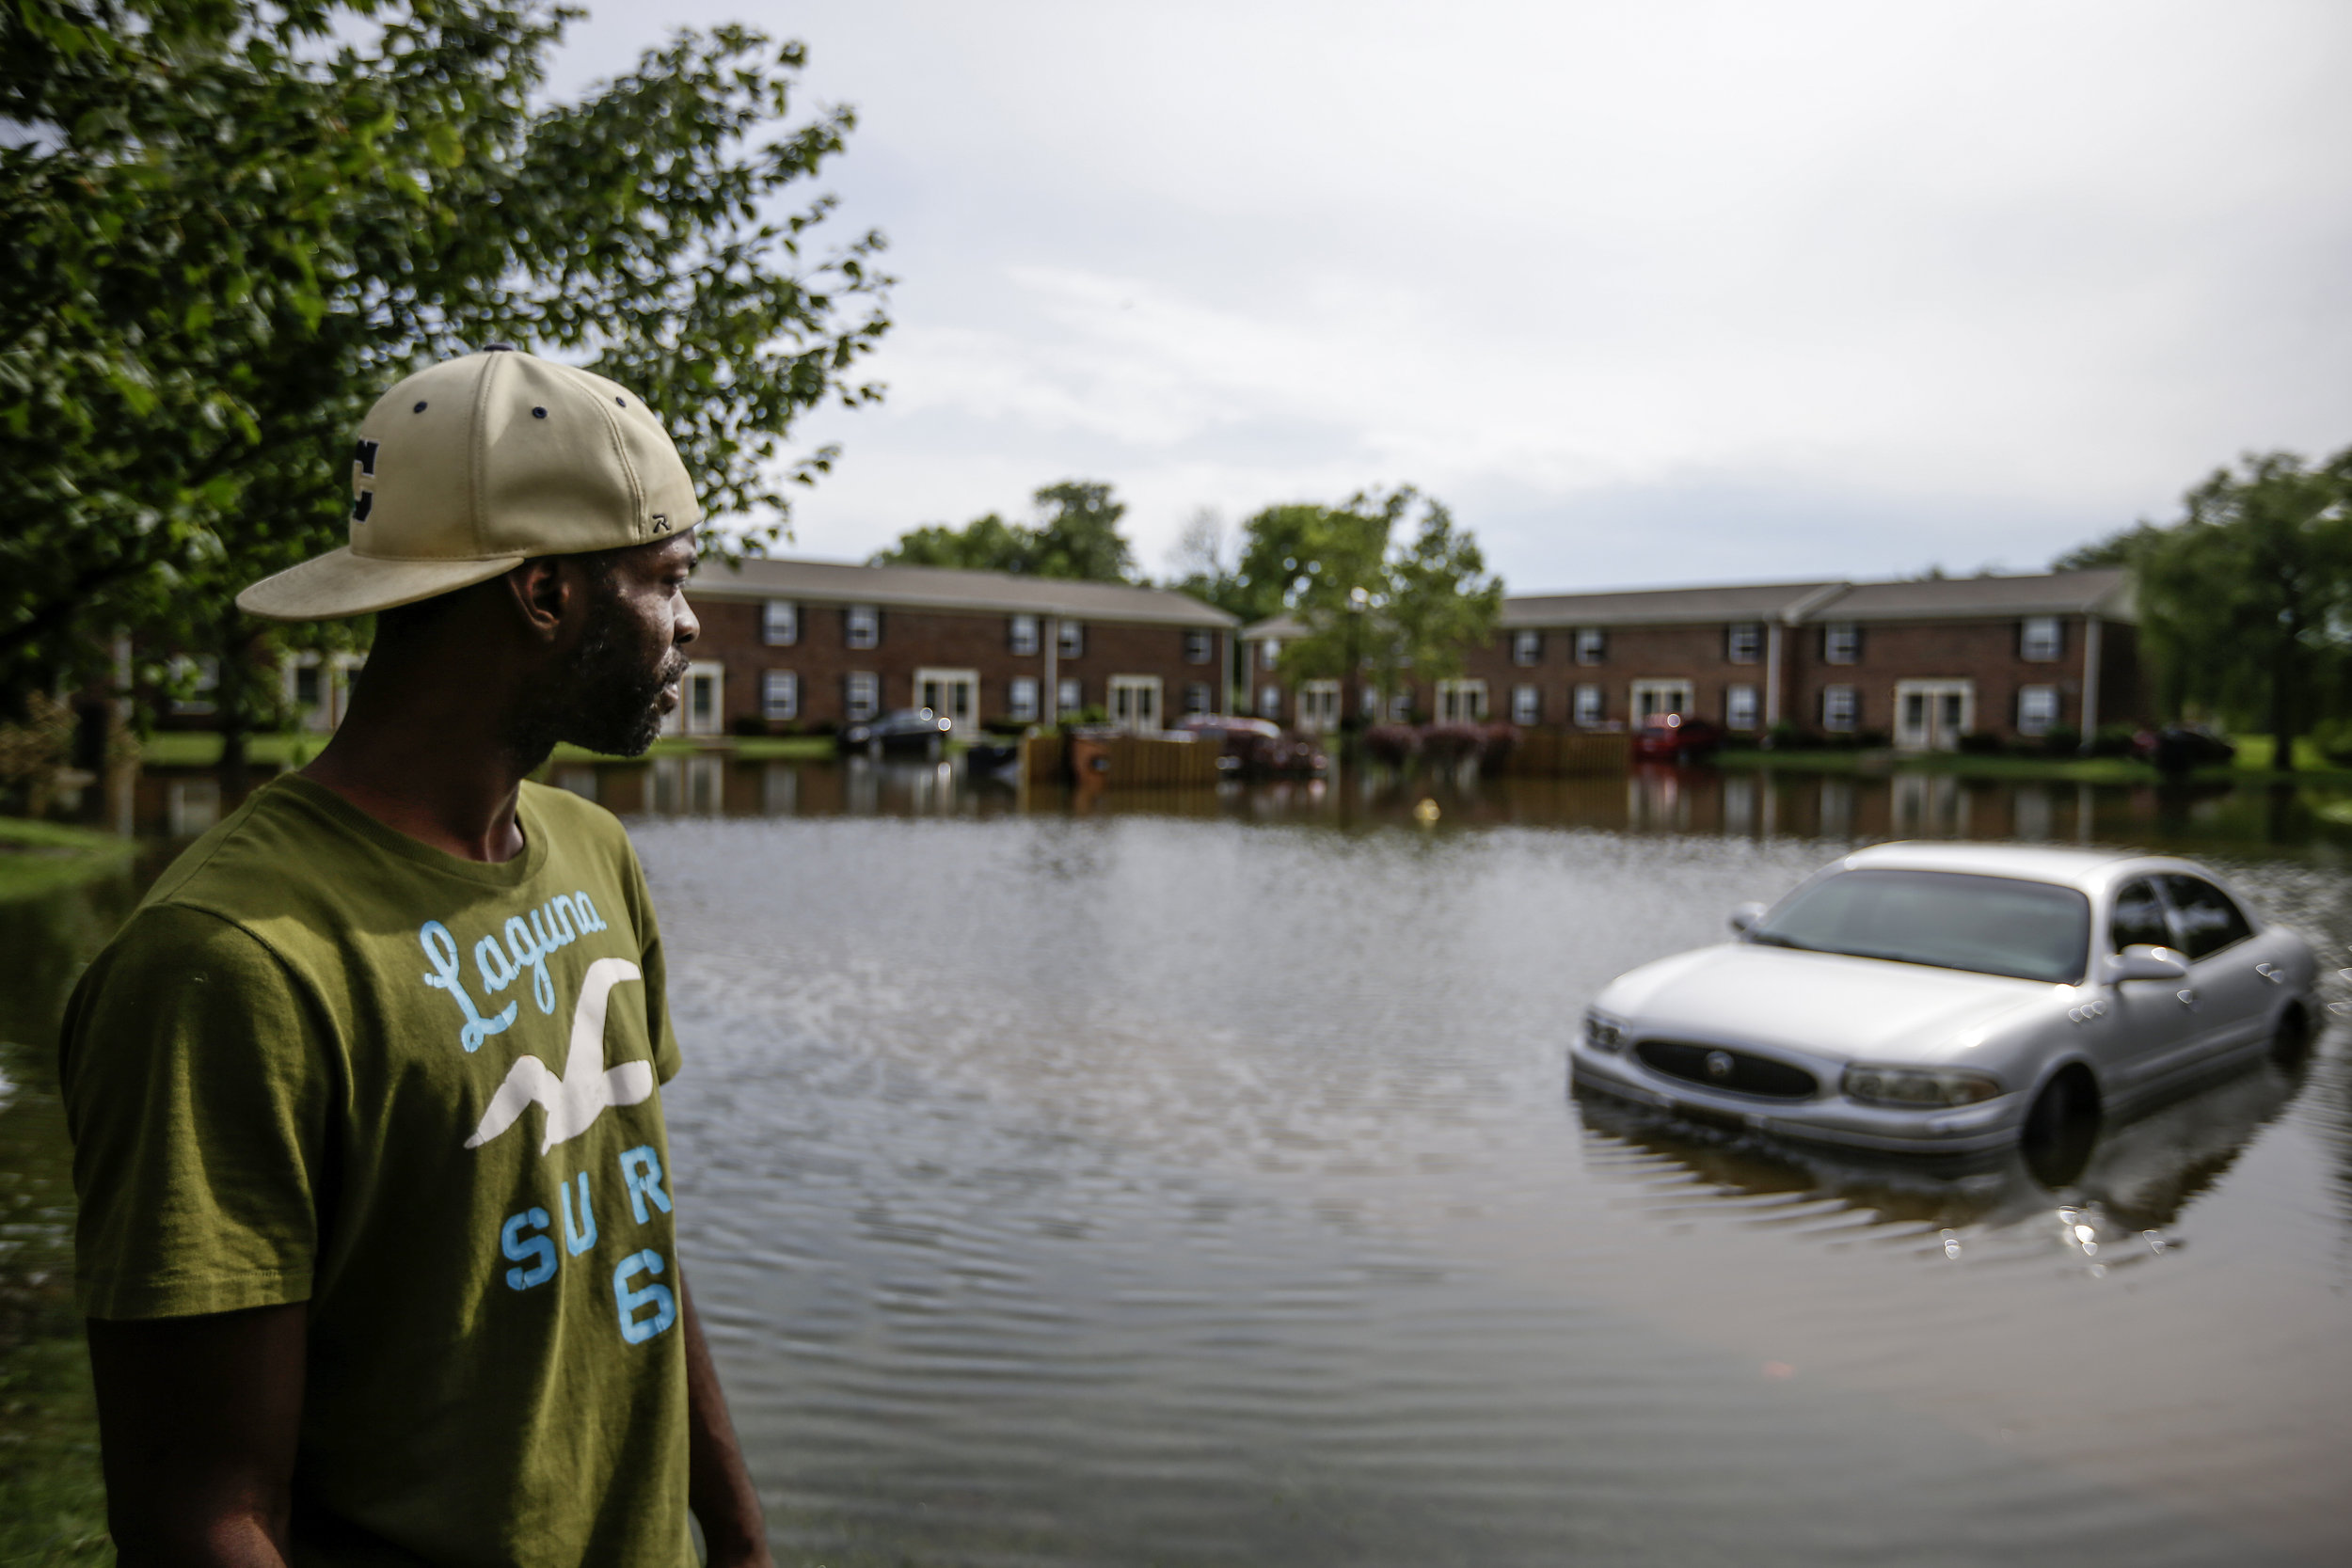 """Nials Johnson looks at his submerged Buick Sabre in Franklin, Ind., on Tuesday, July 11, 2017. Johnson's car had been stolen the previous week, and he had only had it back for three days before the floods hit. """"It's my baby,"""" says Johnson."""